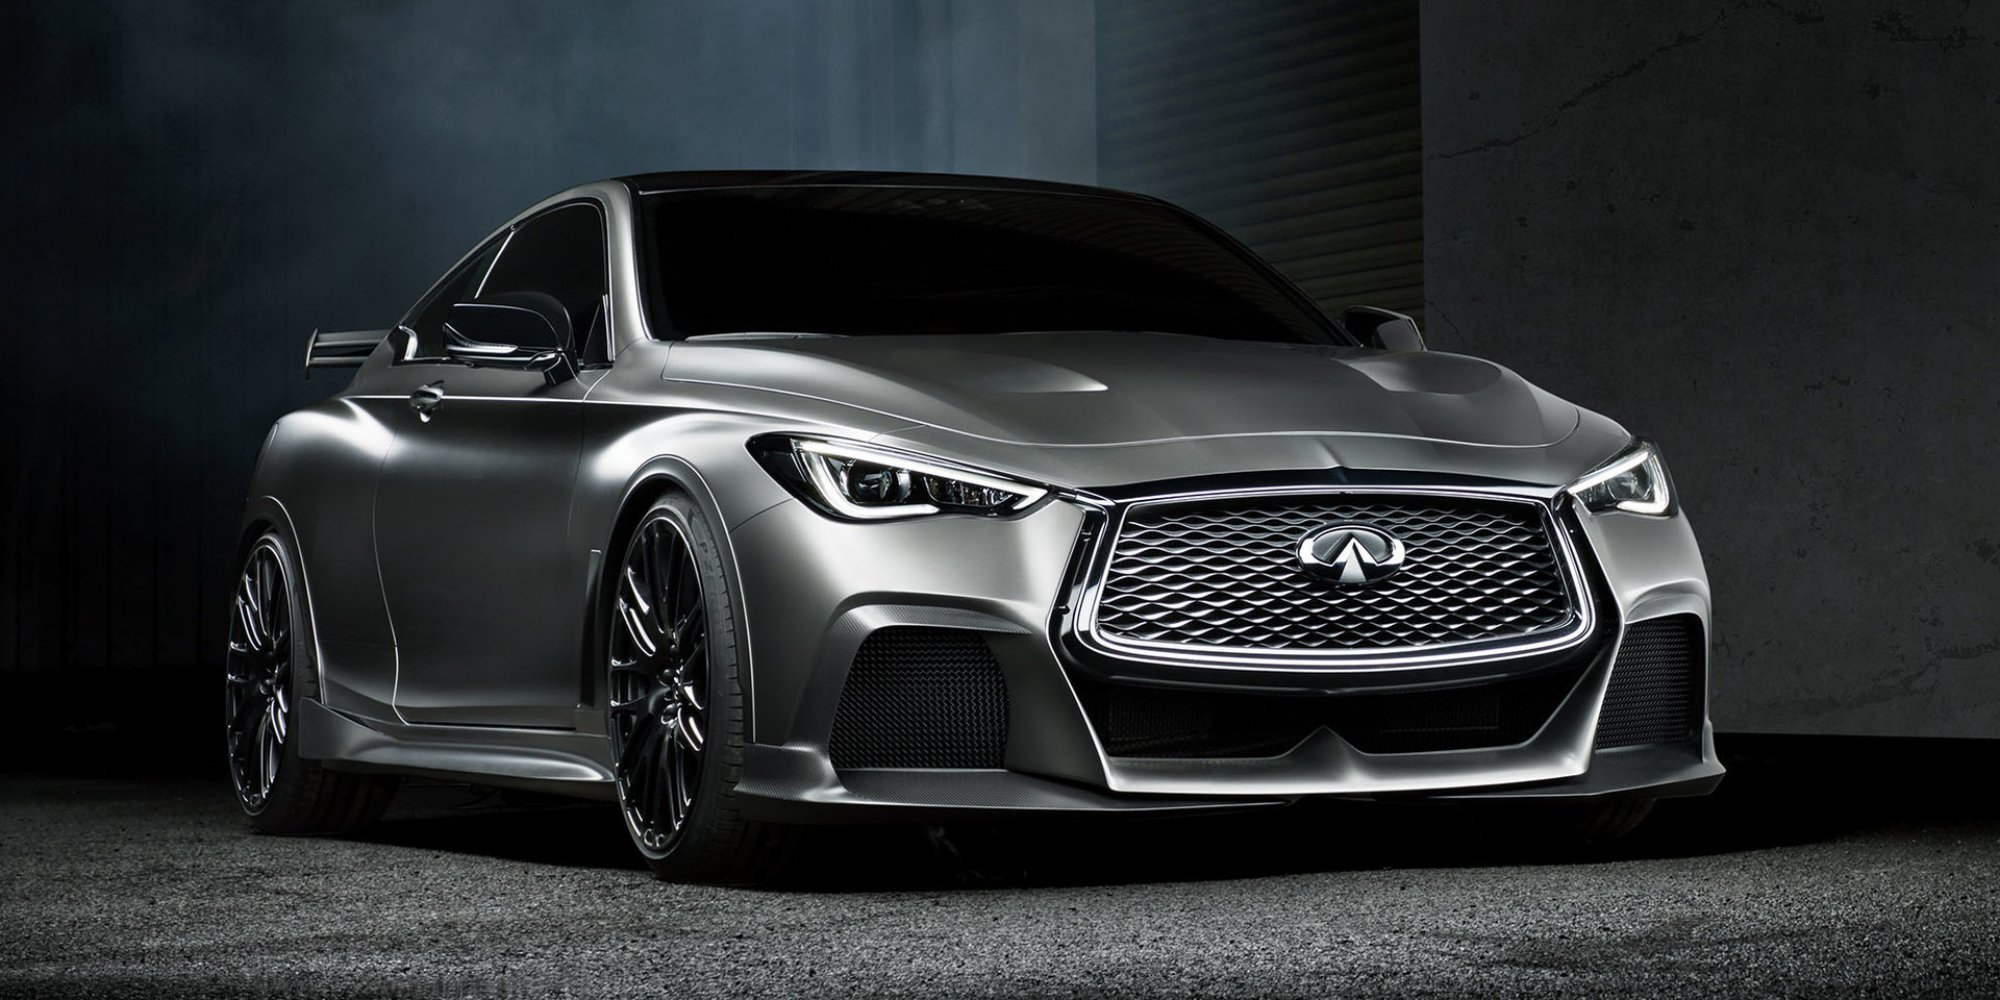 Infiniti Q60 Reviews >> News - 2017 INFINITI Q60 Black S Concept, A Renault F1 Road Car